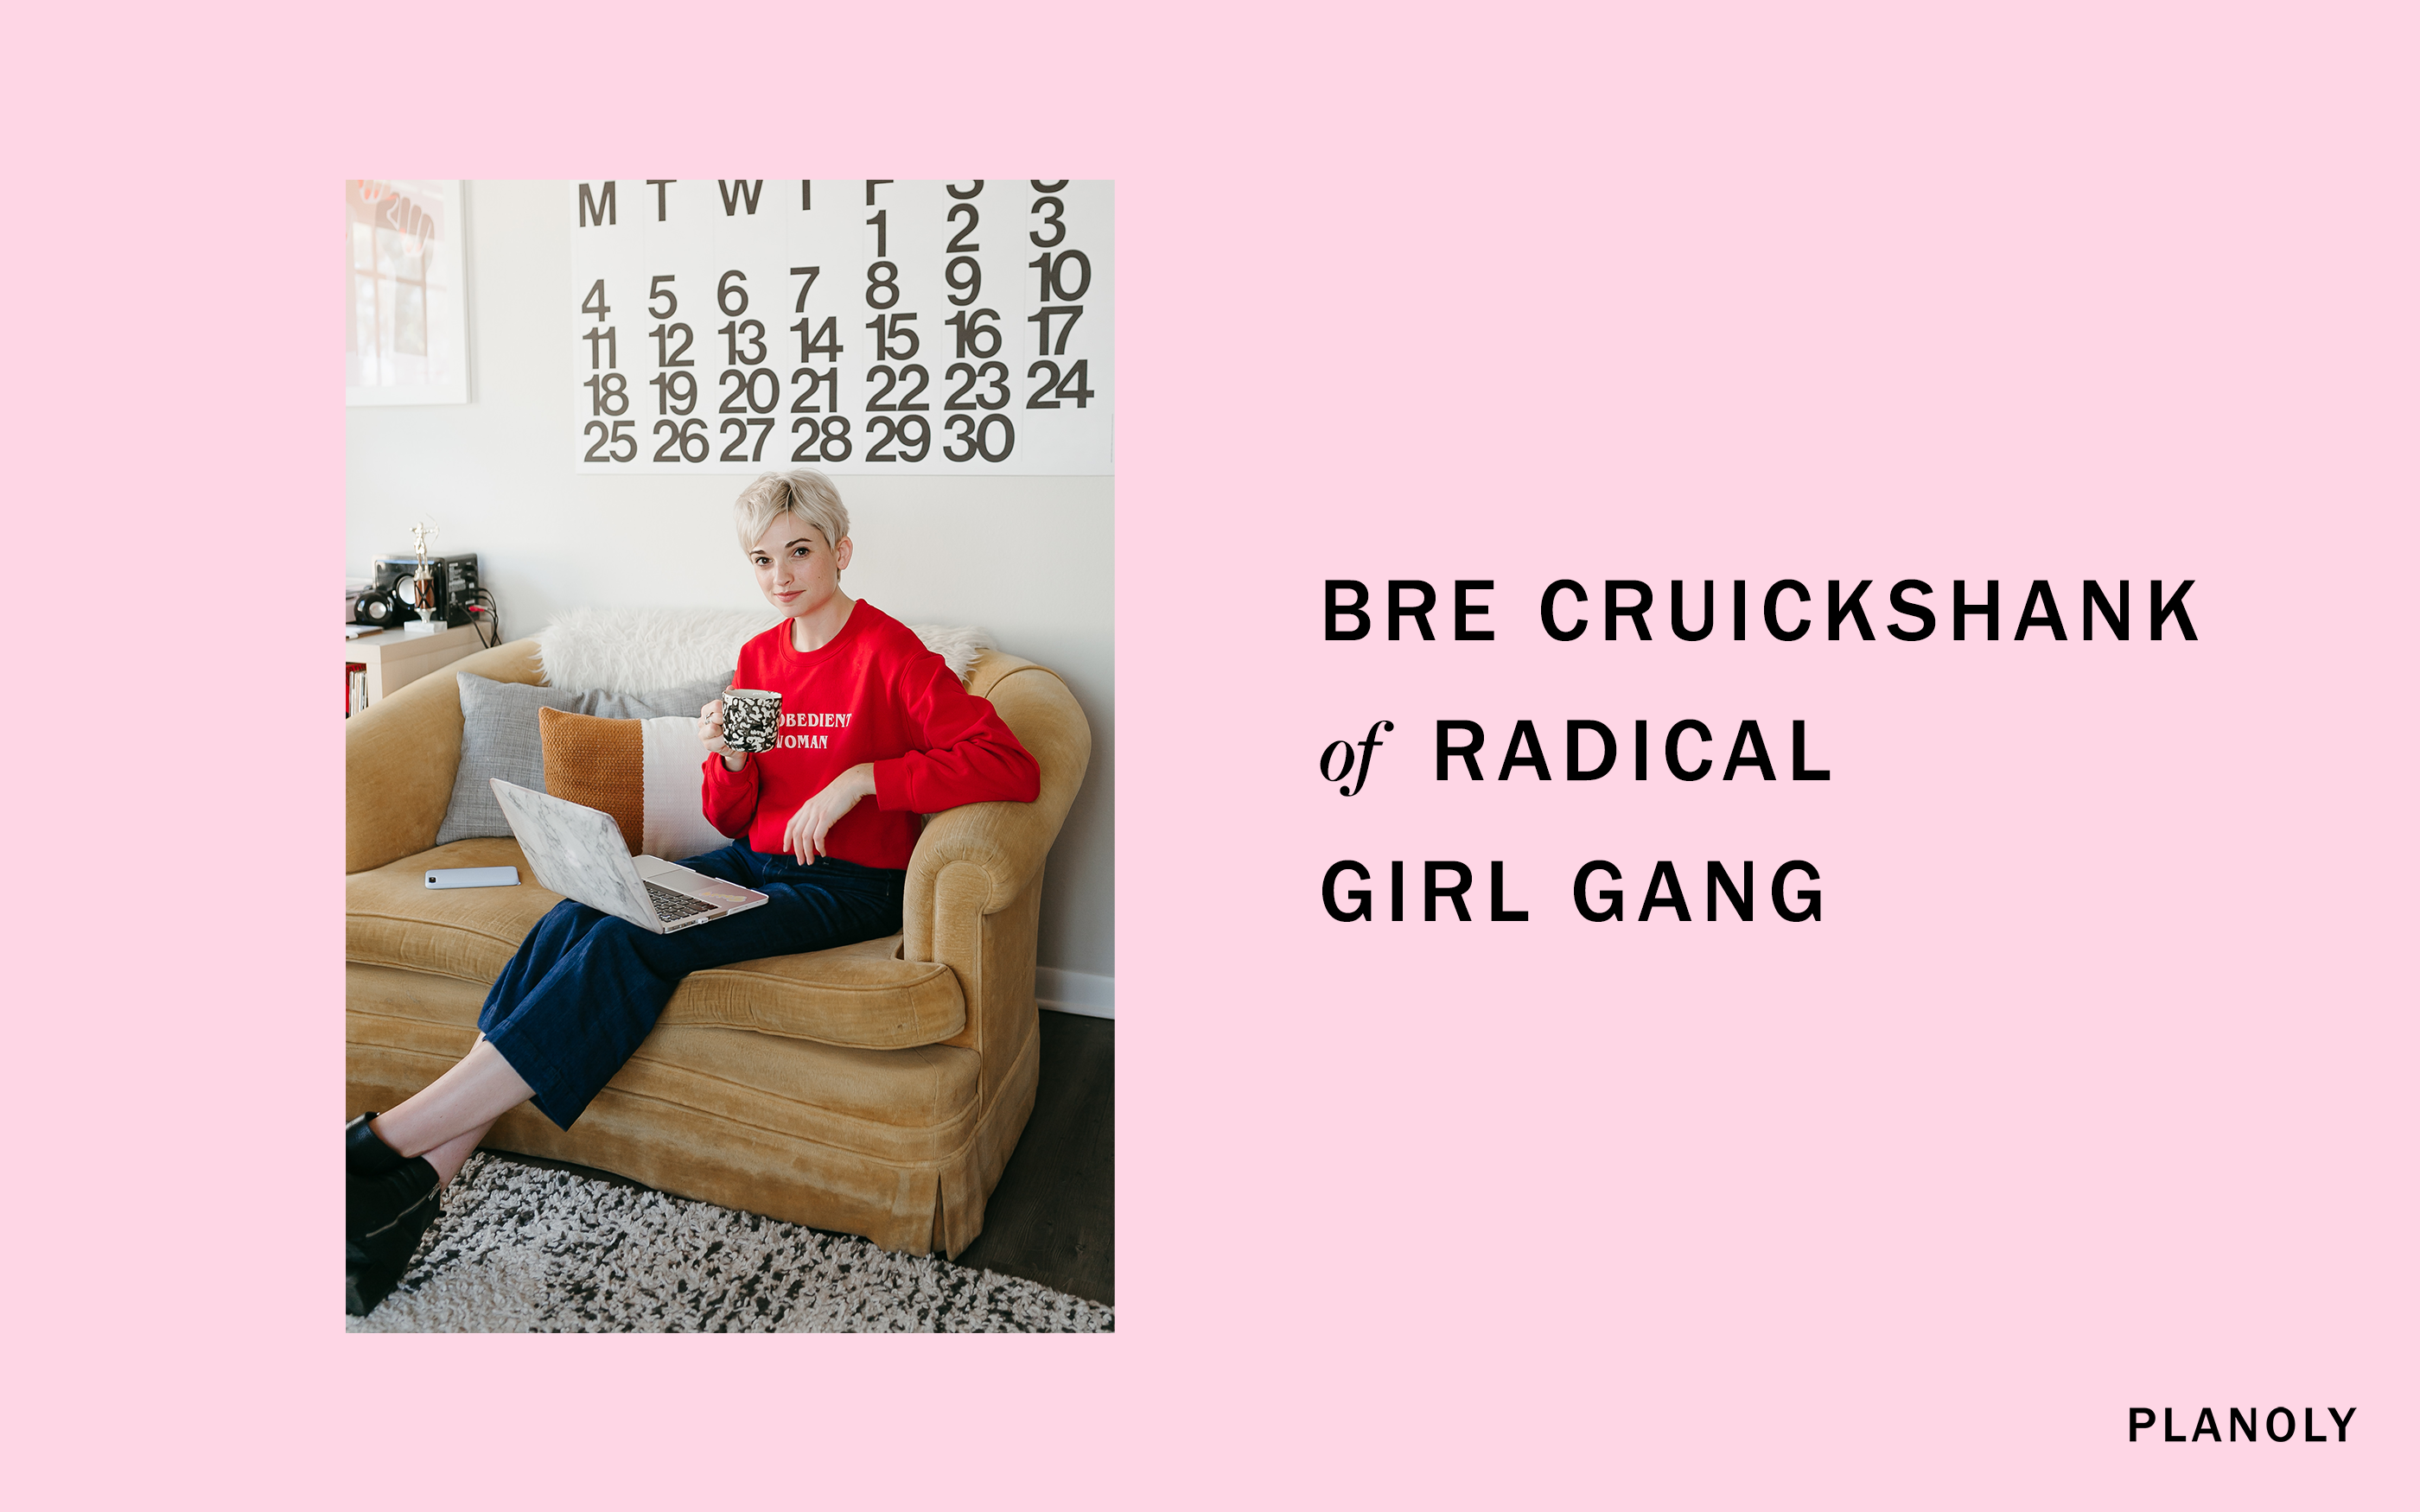 Read about Bre Cruickshank of Radical Girl Gang is Creating an Online Marketplace for Women to Thrive, on PLANOLY